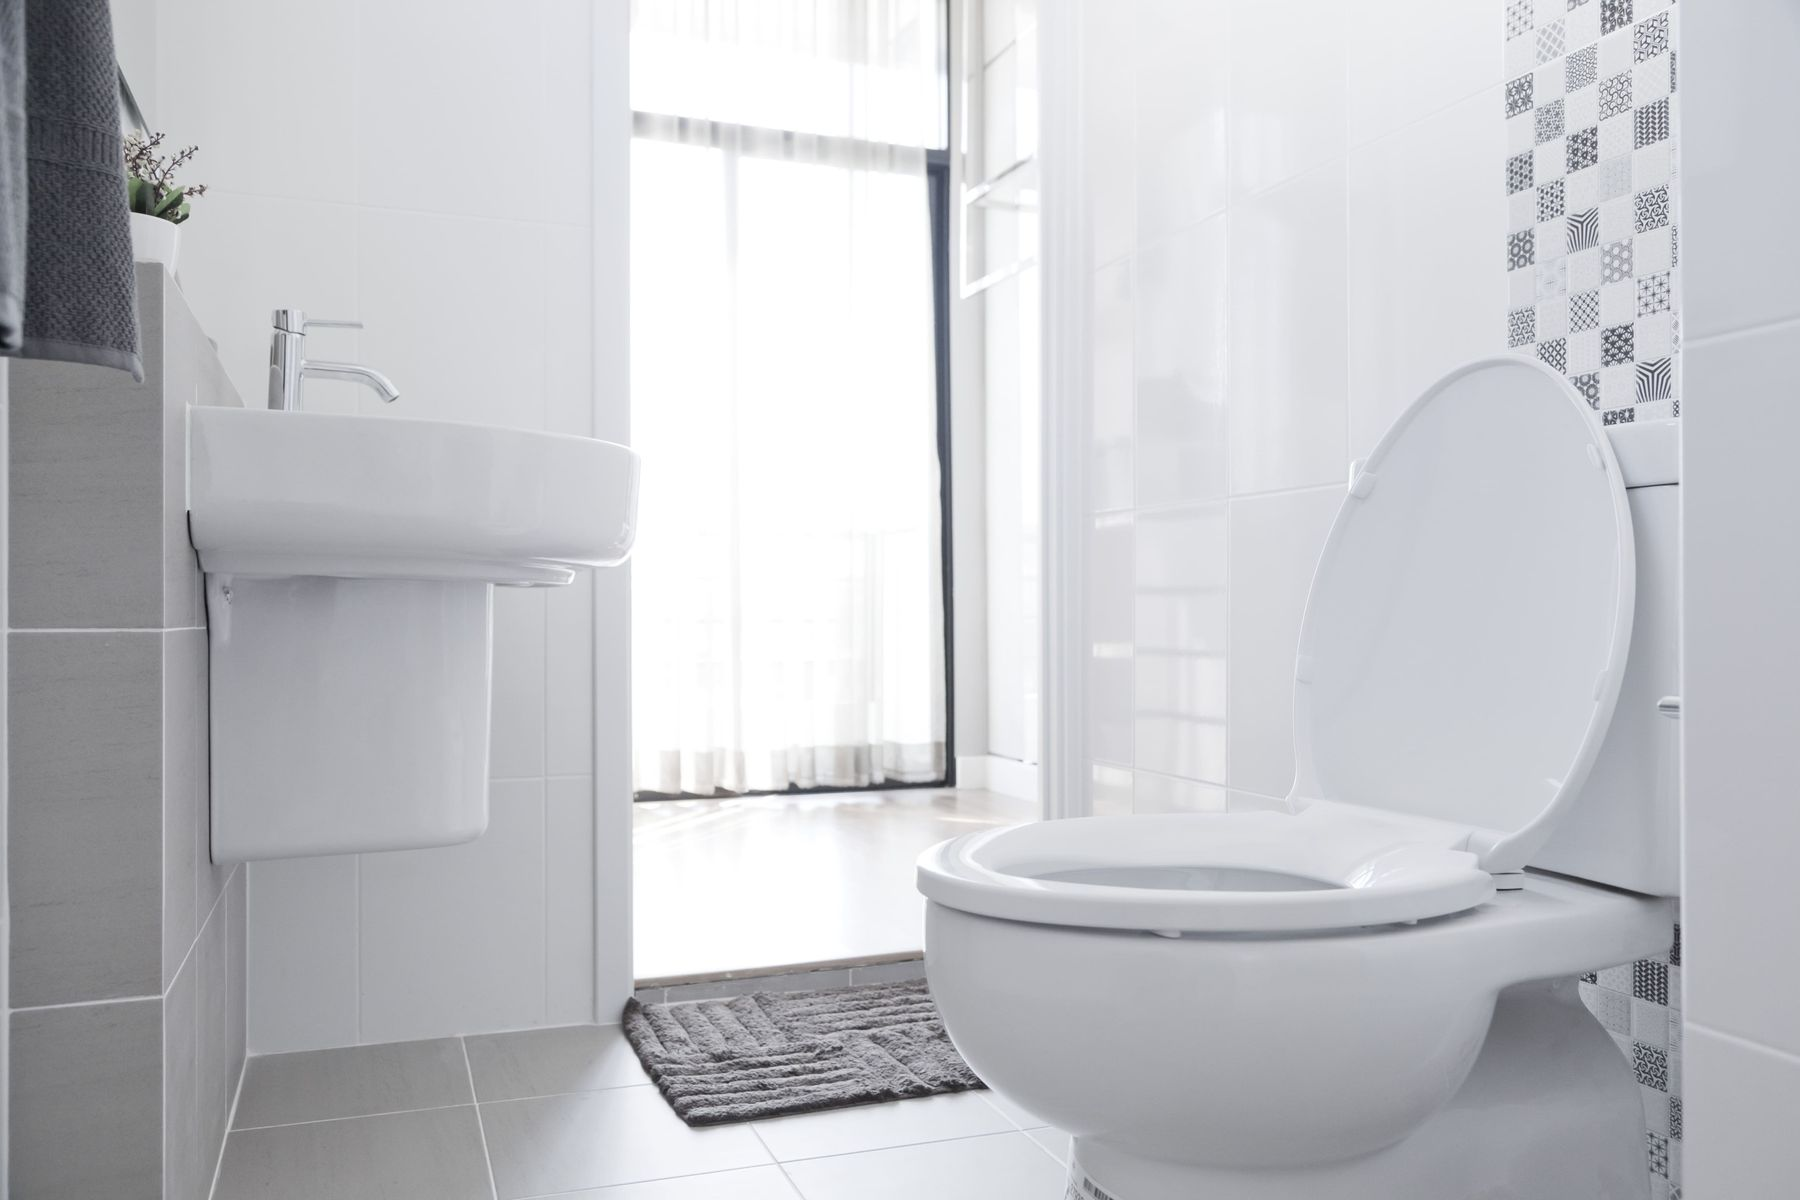 How To Maintain The Shine Of Bathroom Tiles